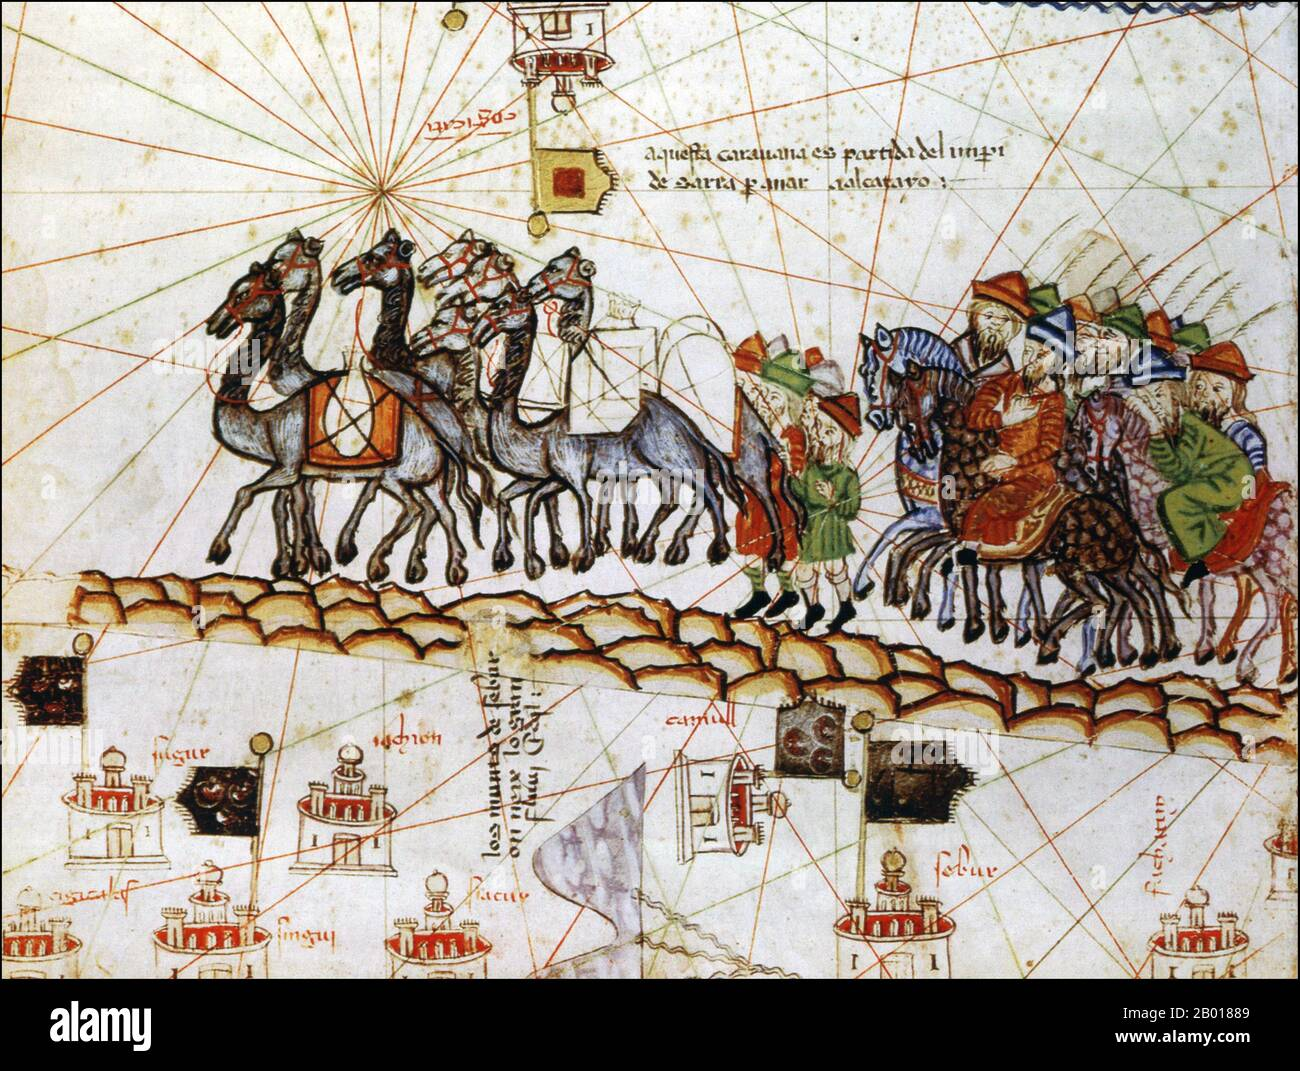 The Catalan Atlas (1375) is the most important Catalan map of the medieval period. It was produced by the Majorcan cartographic school and is attributed to Cresques Abraham, a Jewish book illuminator who was self-described as being a master of the maps of the world as well as compasses. It has been in the royal library of France (now the Bibliothèque nationale de France) since the late 14th century. Stock Photo